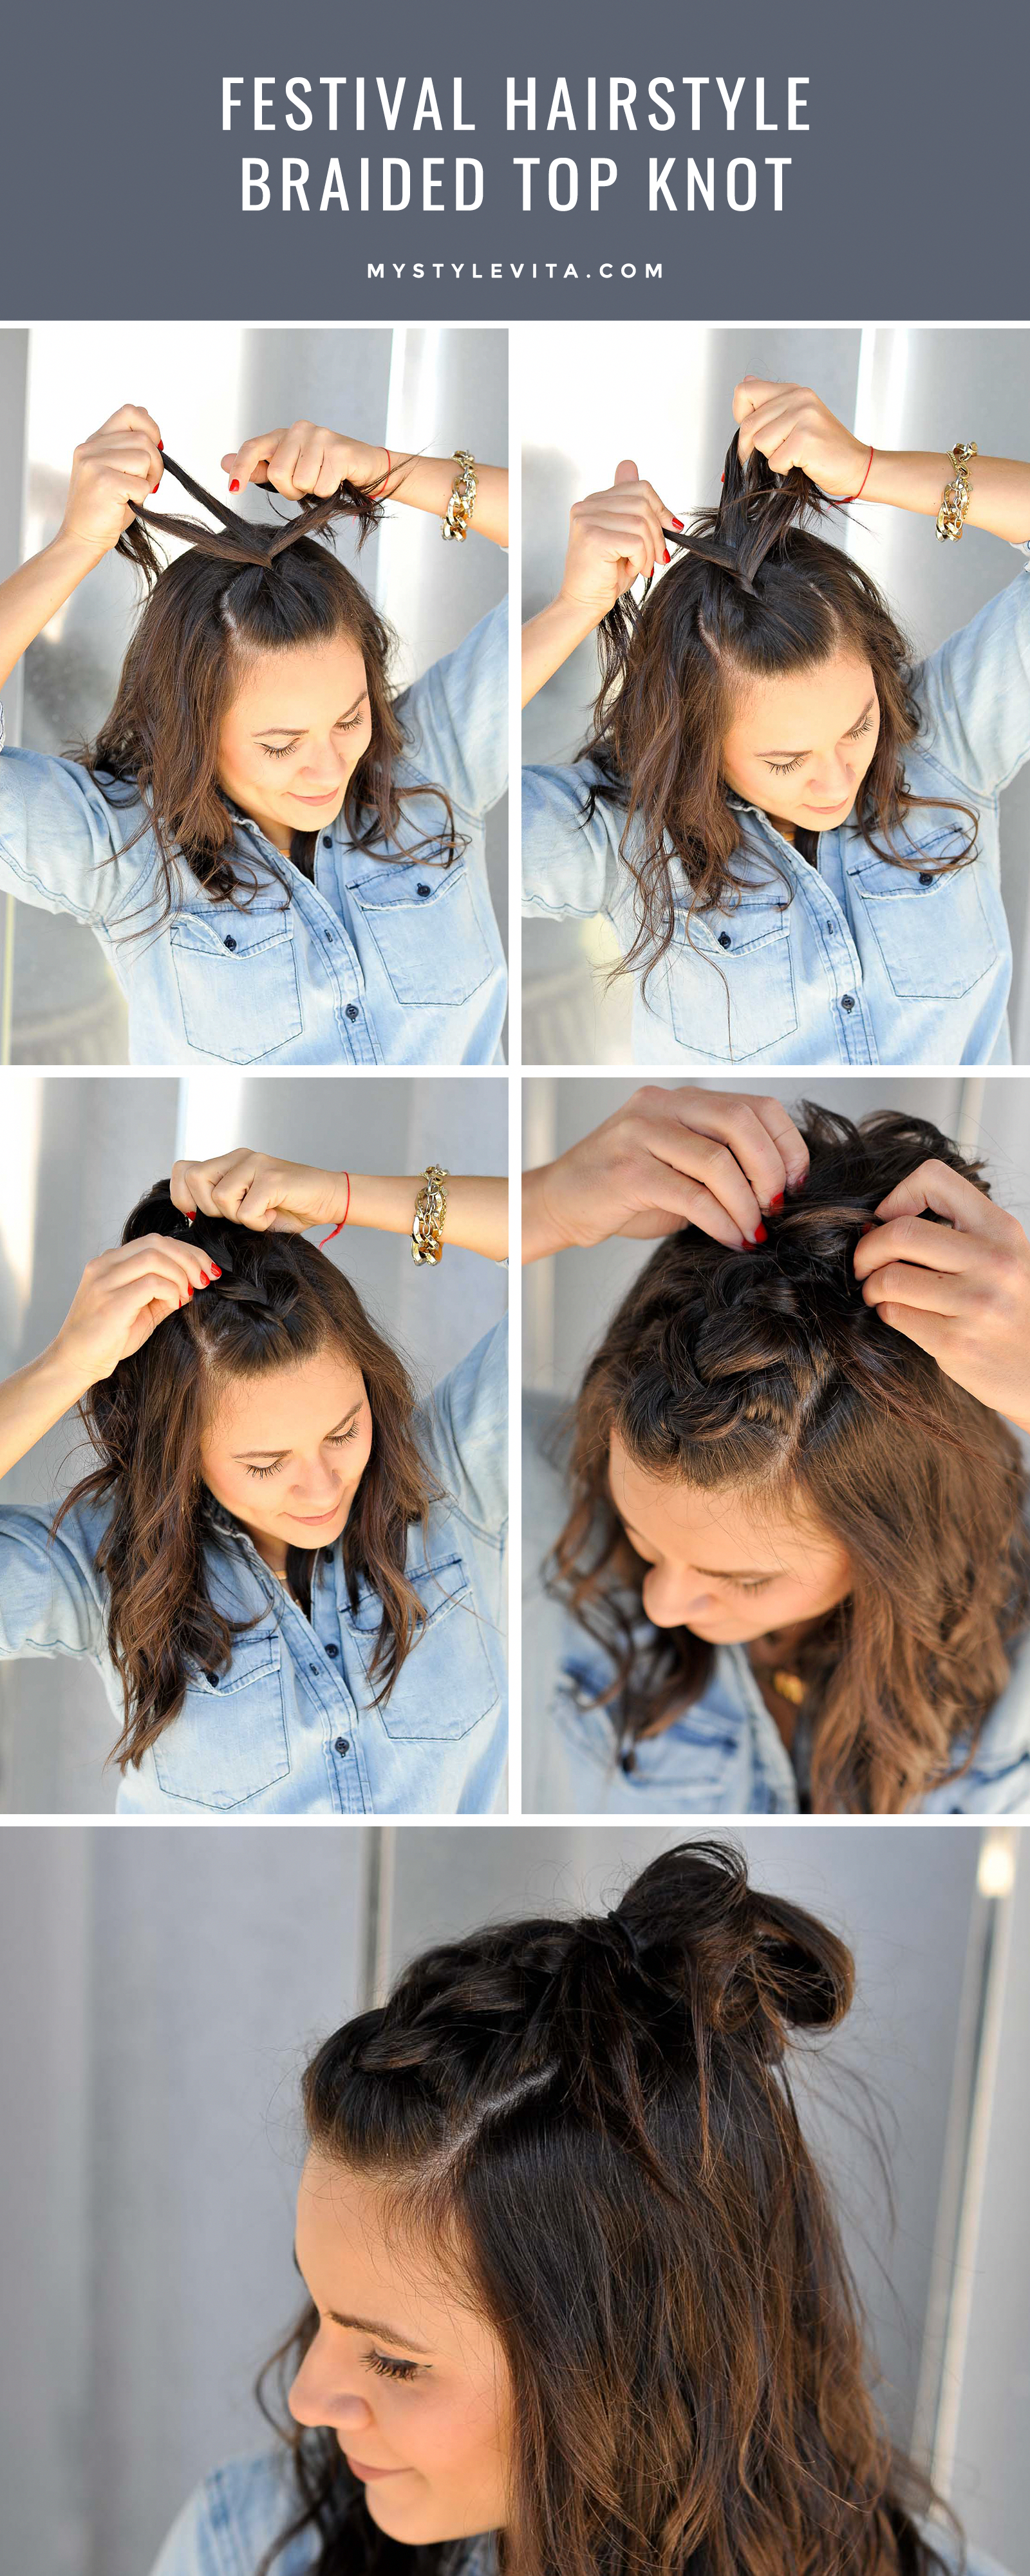 Festival hair style ideas, braided top knot, easy braided hairstyles – My Style …